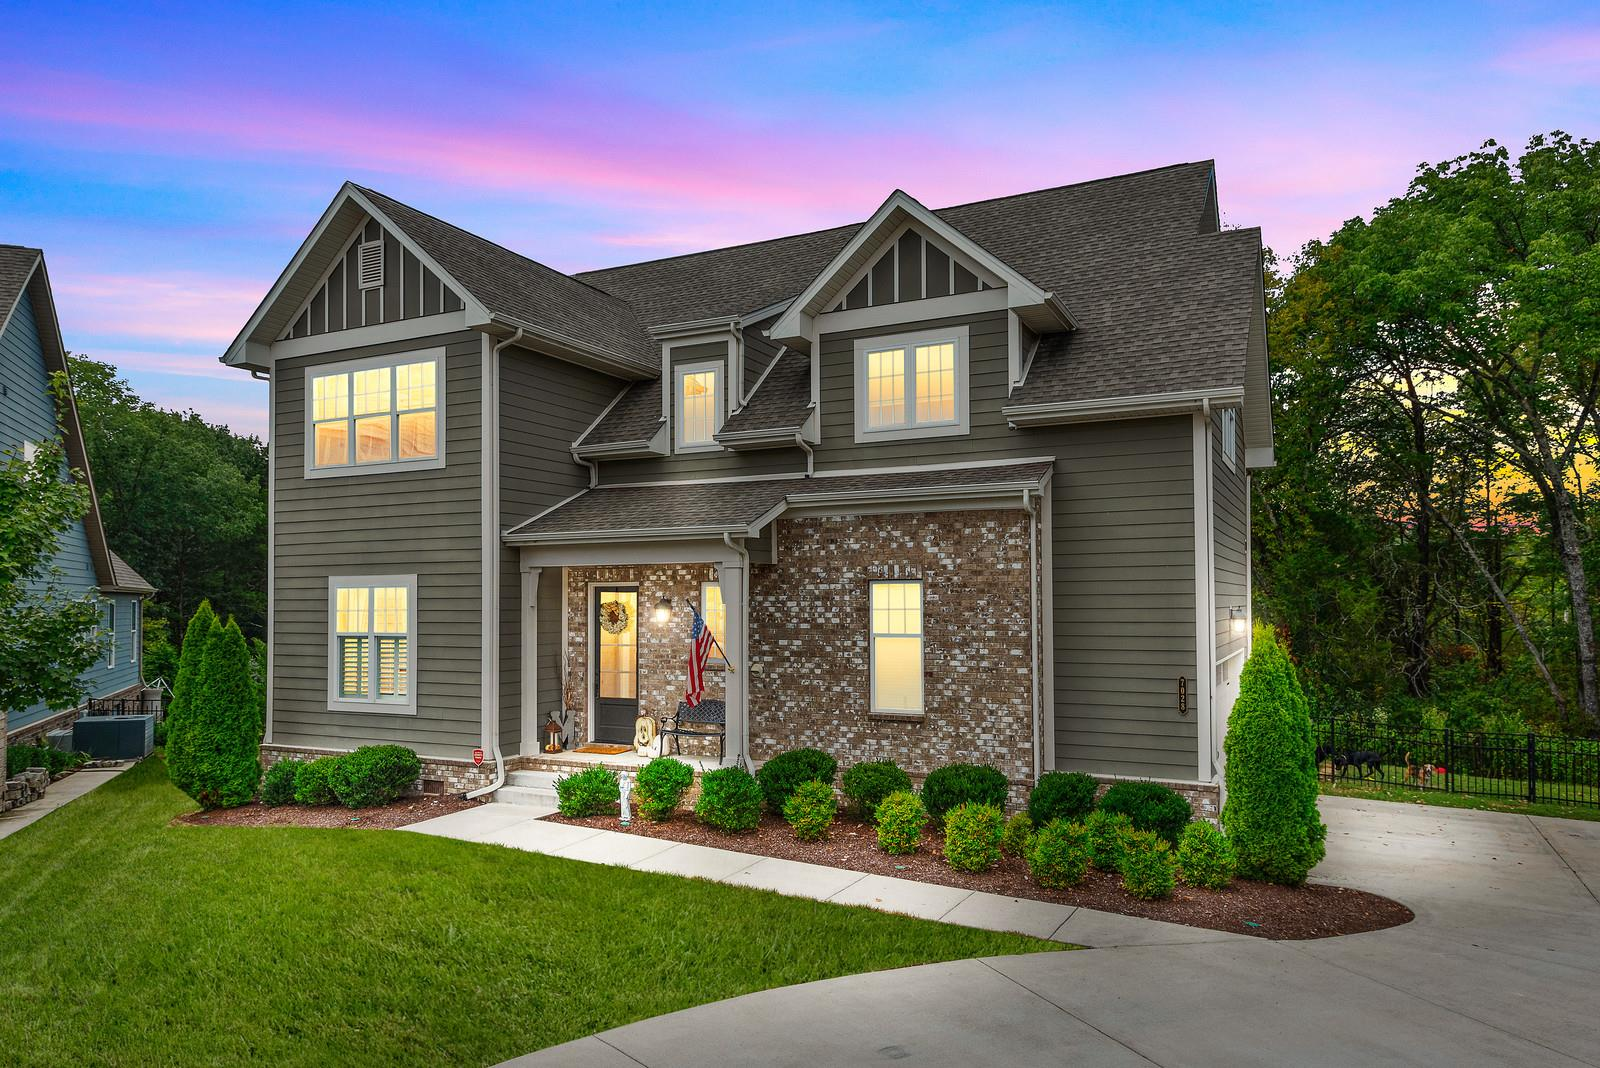 One of Nolensville 4 Bedroom Homes for Sale at 7028 Fishing Creek Rd